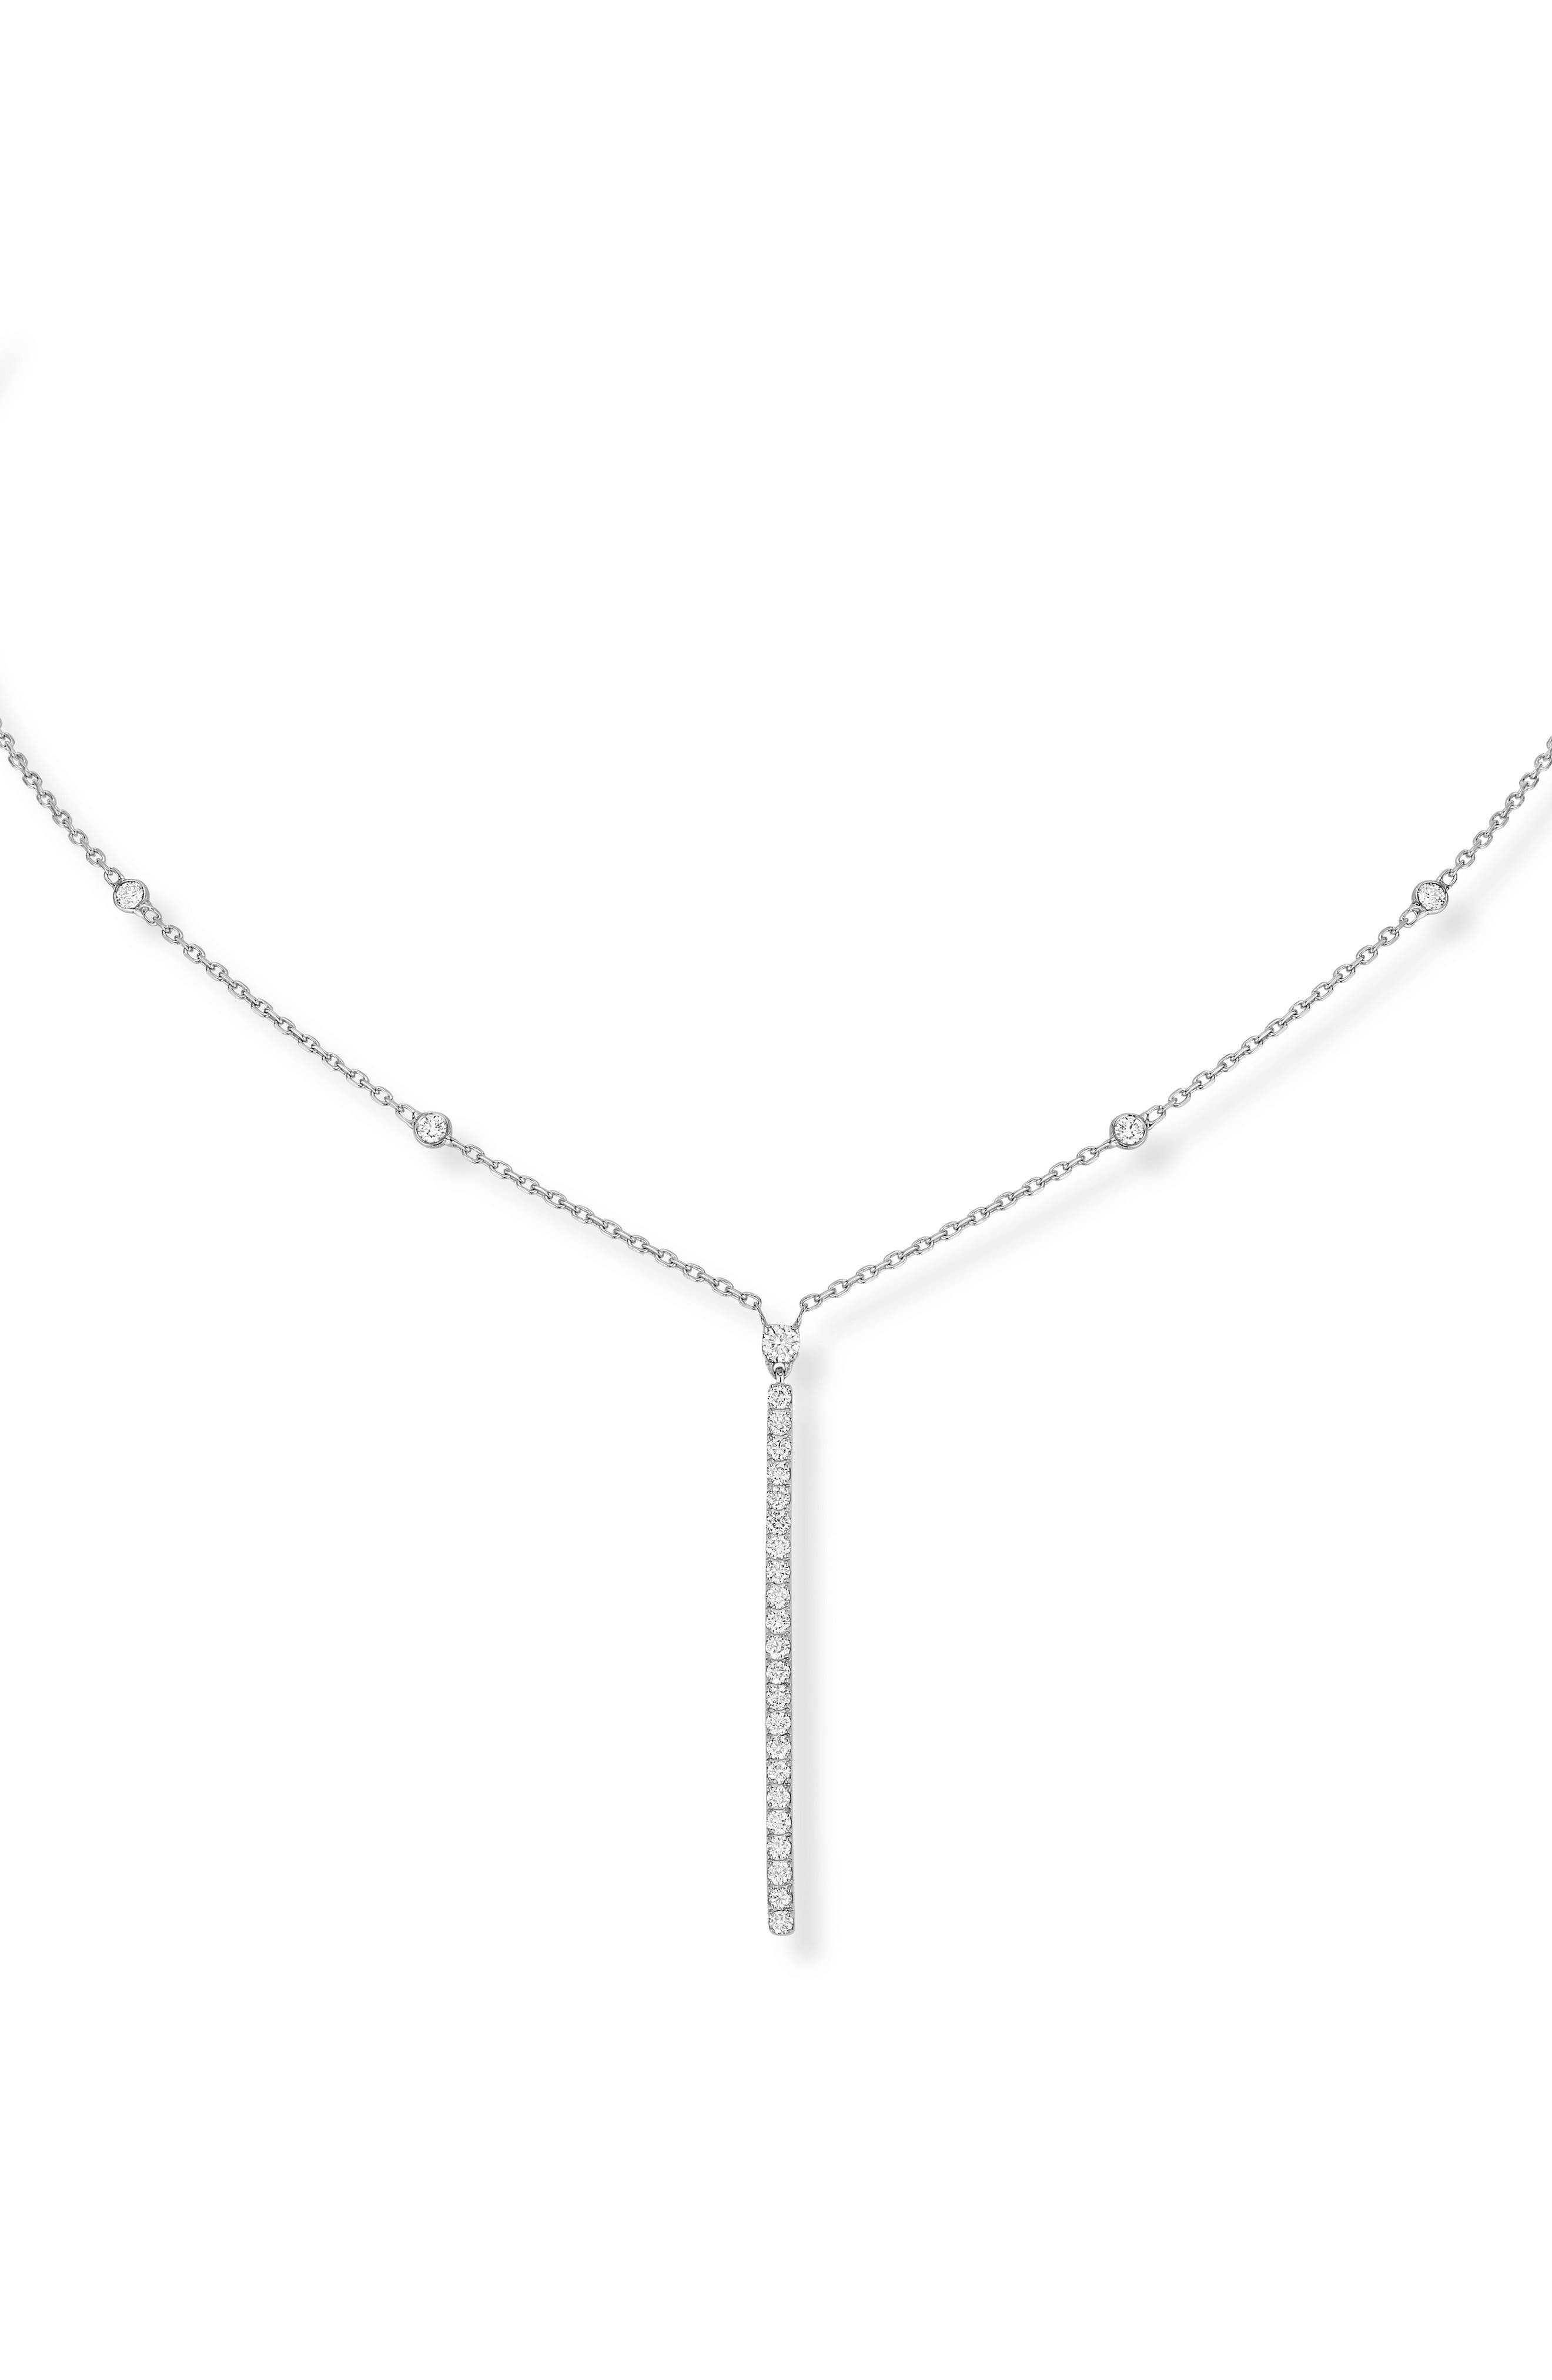 Gatsby Diamond Collar Necklace,                             Main thumbnail 1, color,                             WHITE GOLD